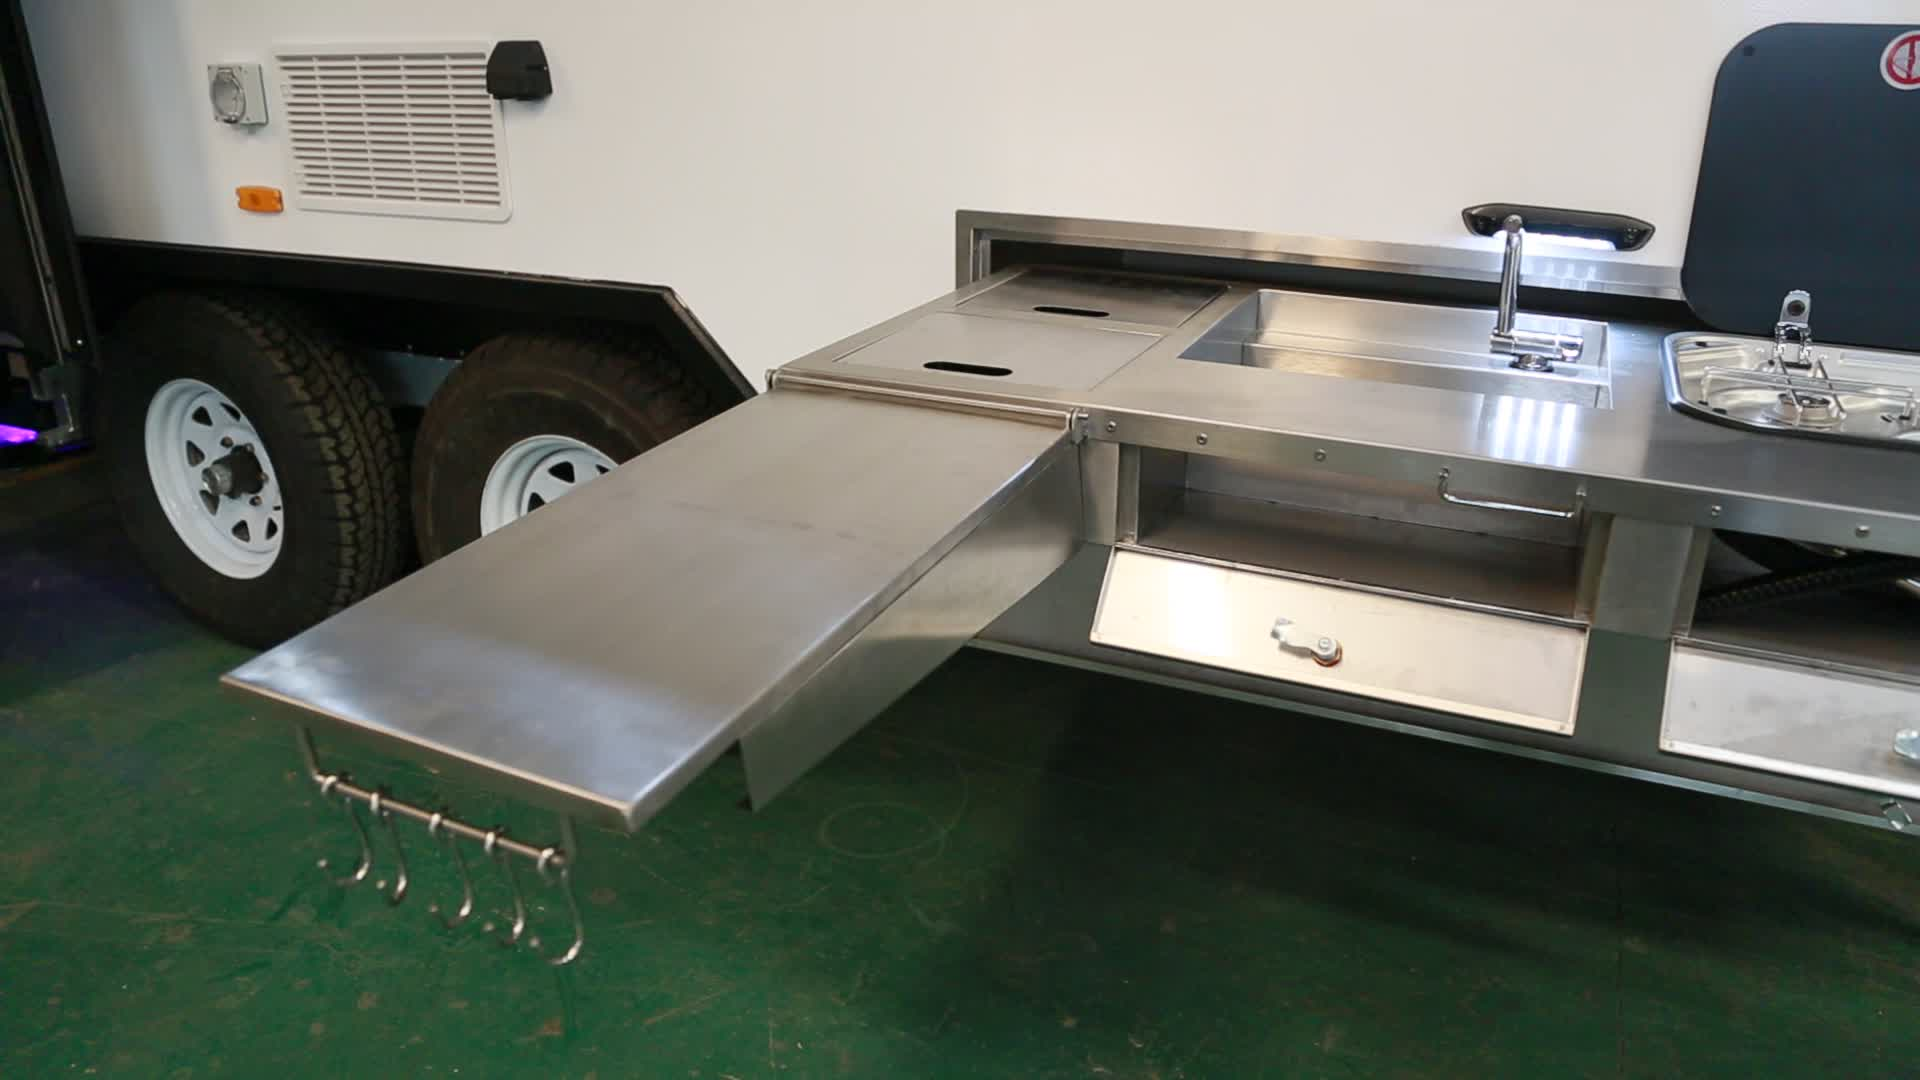 Caravan With Slide Out Kitchen Stainless Steel Slide Out Camper Kitchen Accessories With